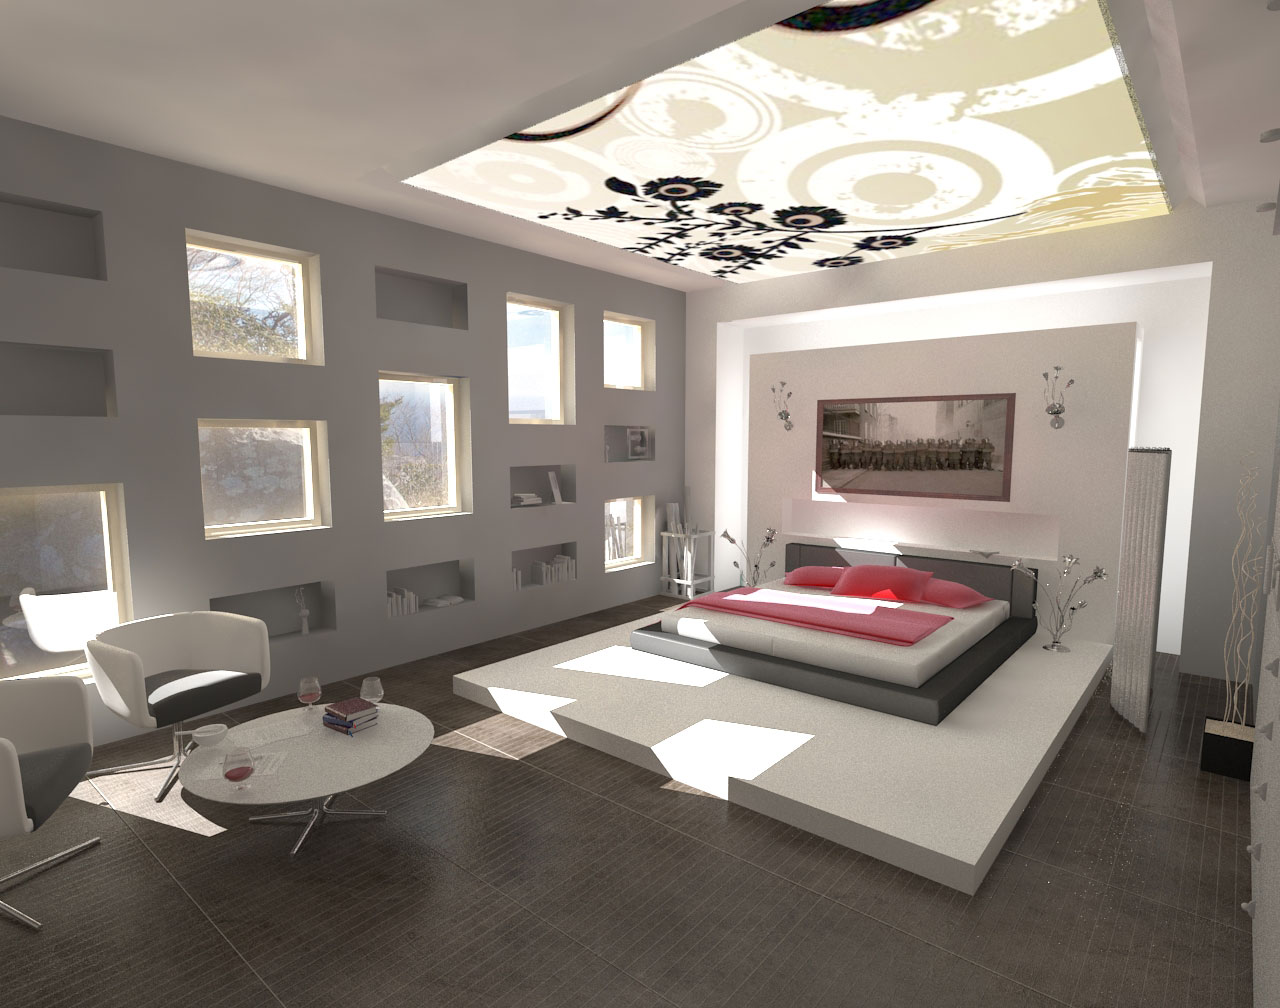 interior design ideas fantastic modern bedroom paints On modern bedroom art ideas